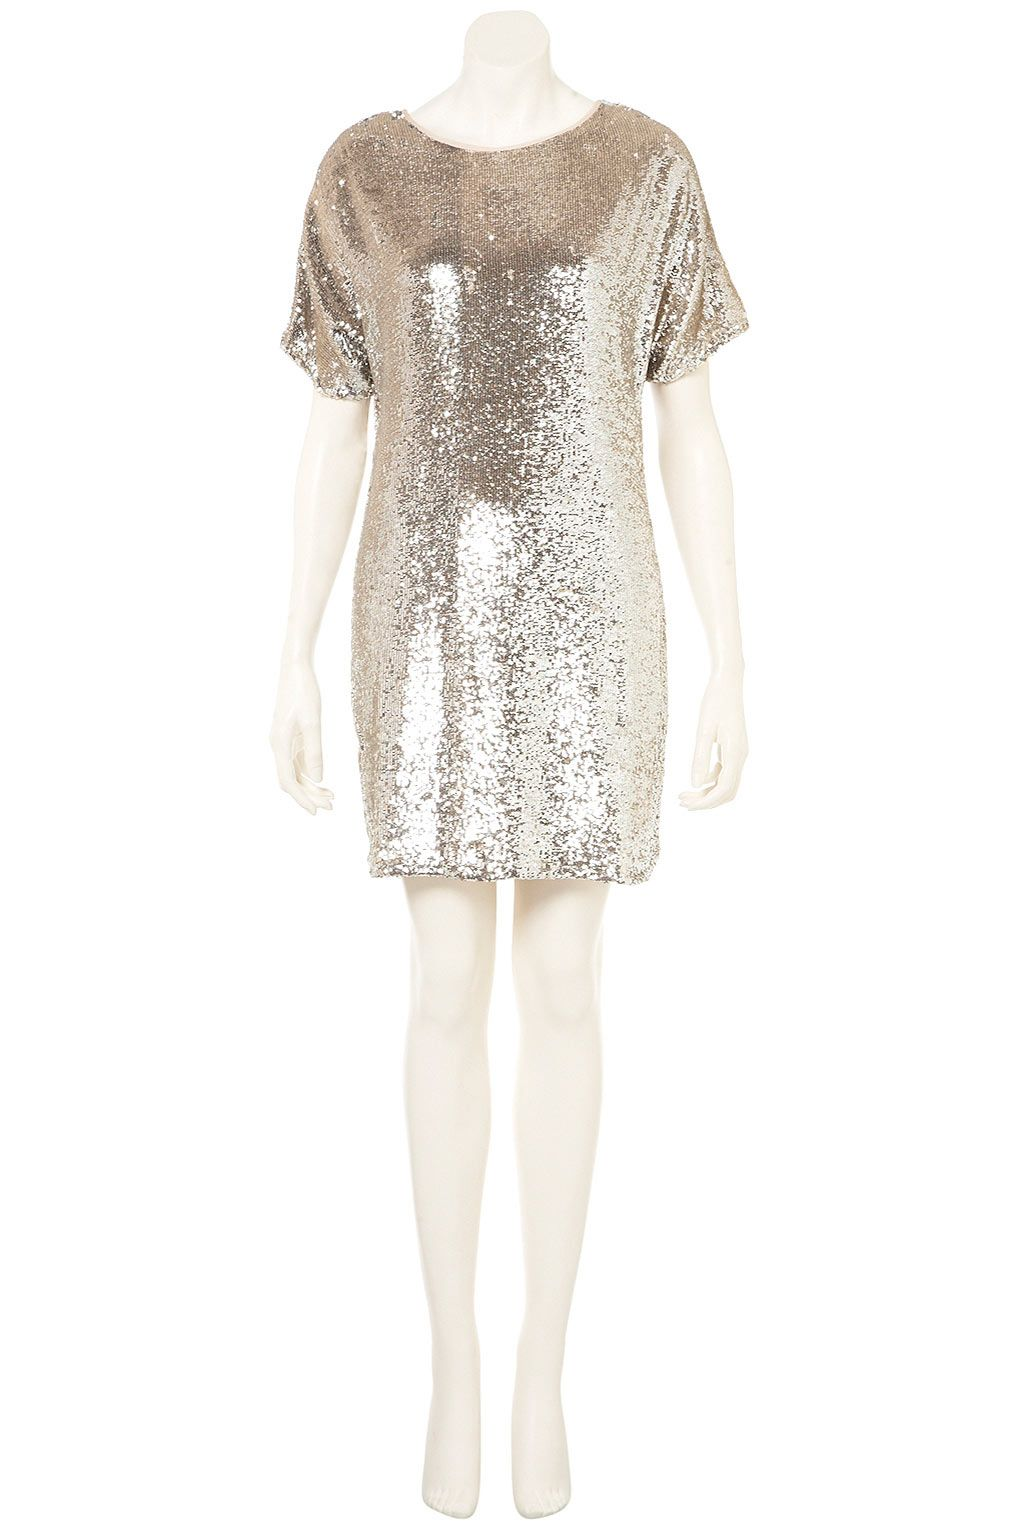 7eef2ed57646 Pin by Hannah Harding-Minton on My Style | Dresses, Sequin t shirt ...